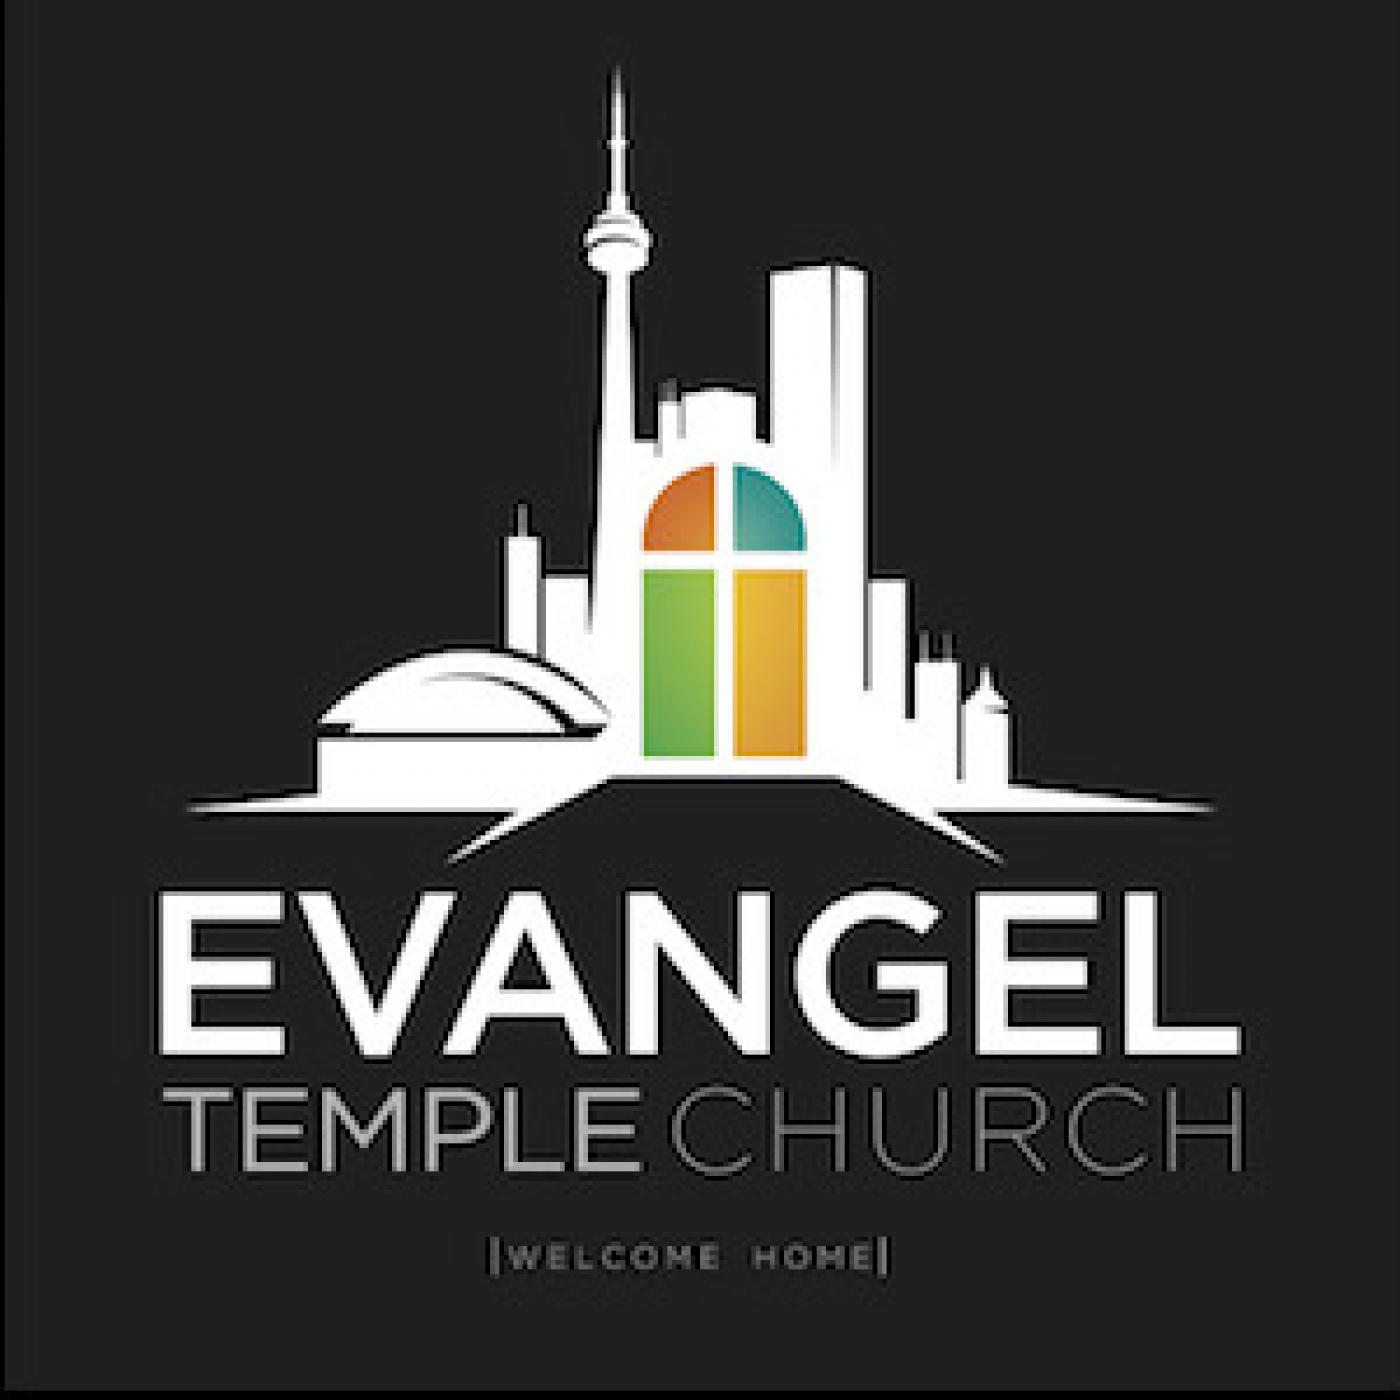 Evangel Temple Church Podcast